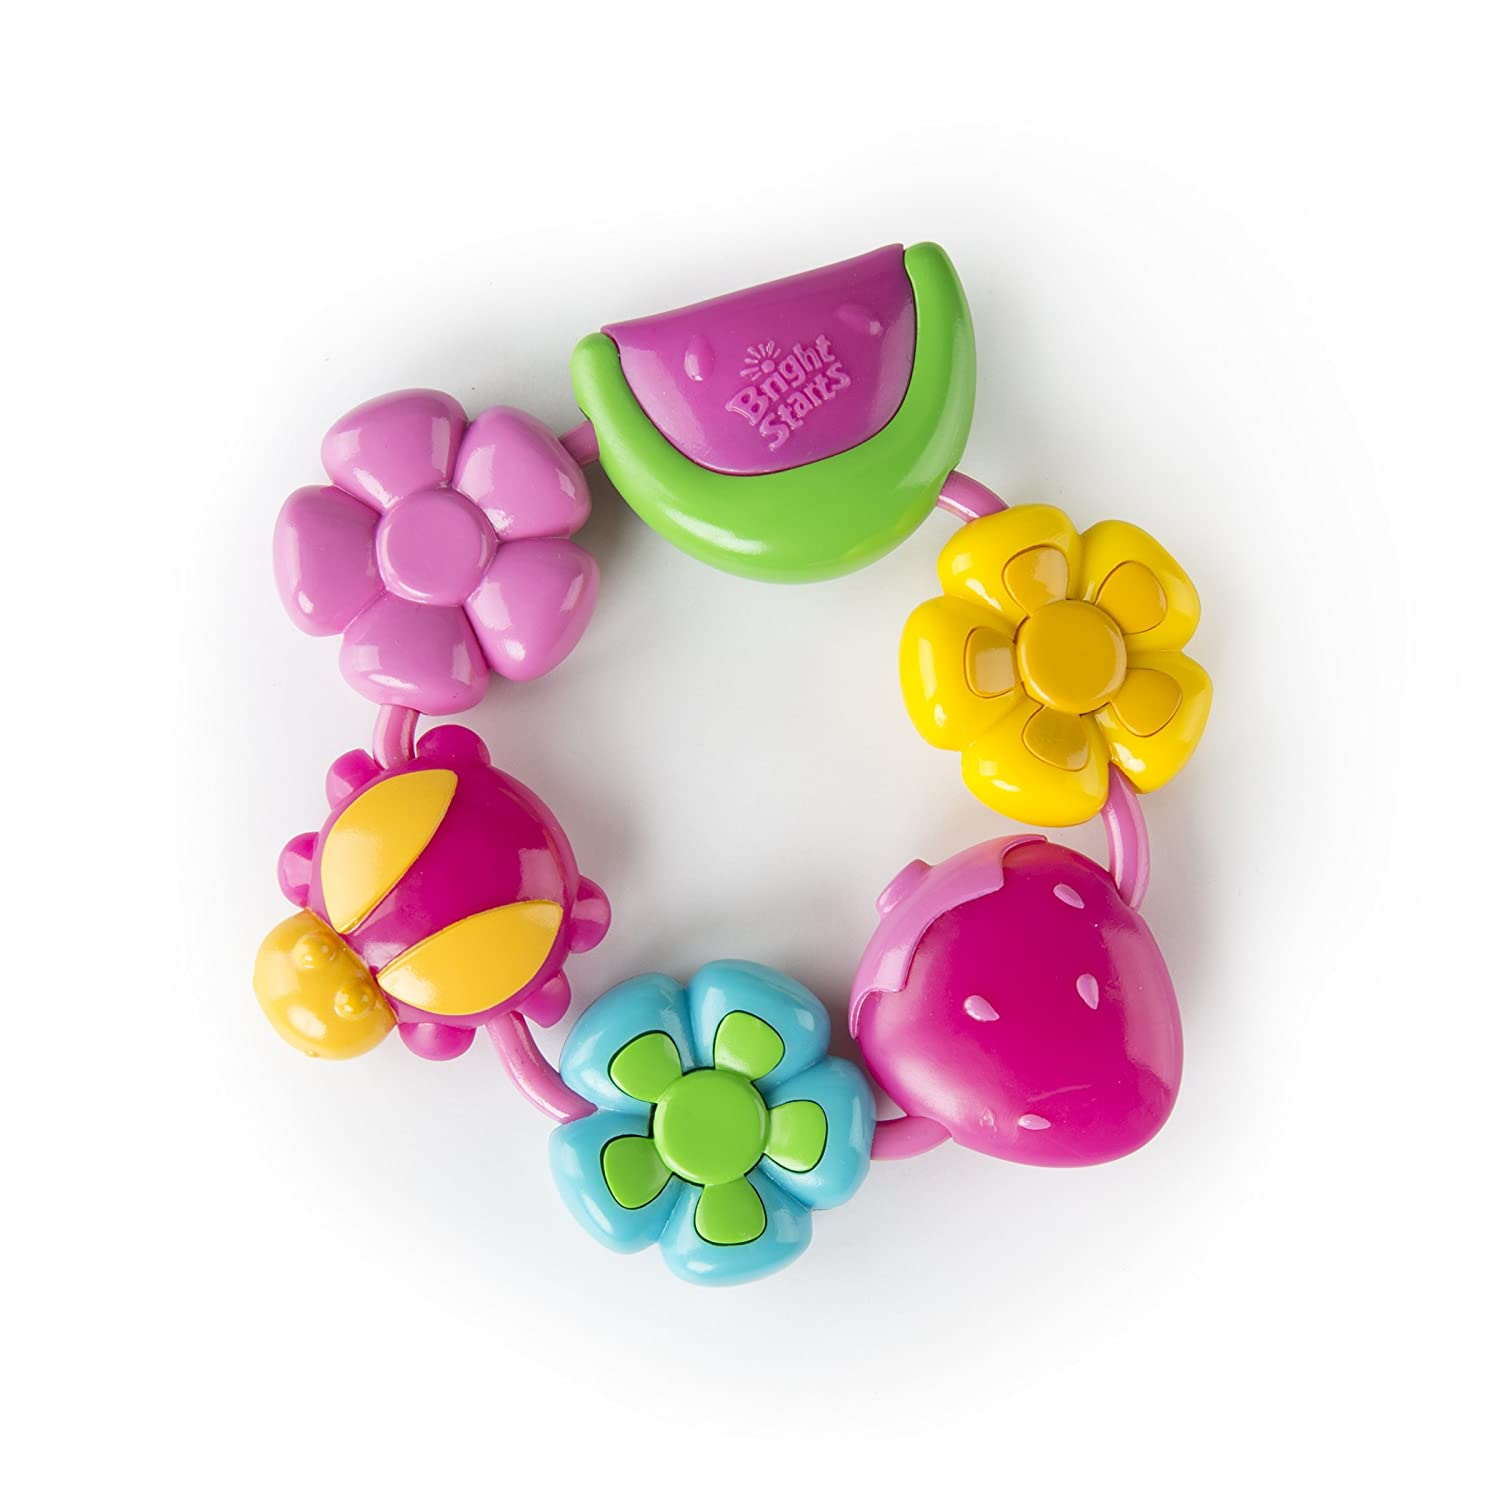 BRIGHT STARTS Buggie Bites Teether KIDS II 52028-12-W11